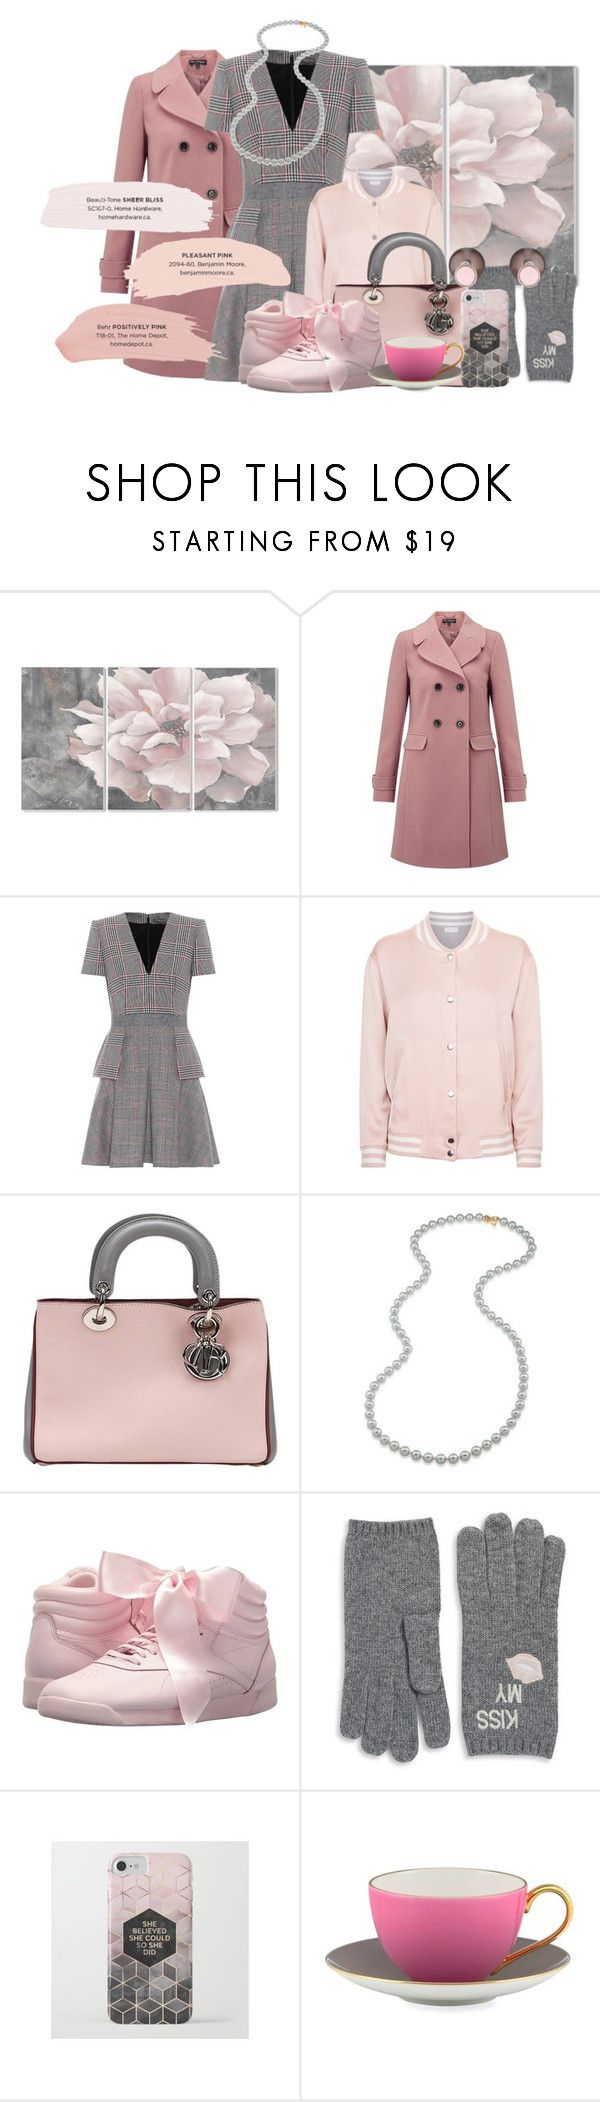 """pink and grey"" by theimprovchica ❤ liked on Polyvore featuring Stupell, Miss Selfridge, Alexander McQueen, Escada Sport, Christian Dior, Carolee, Reebok, Portolano, Kate Spade and Kenneth Jay Lane"